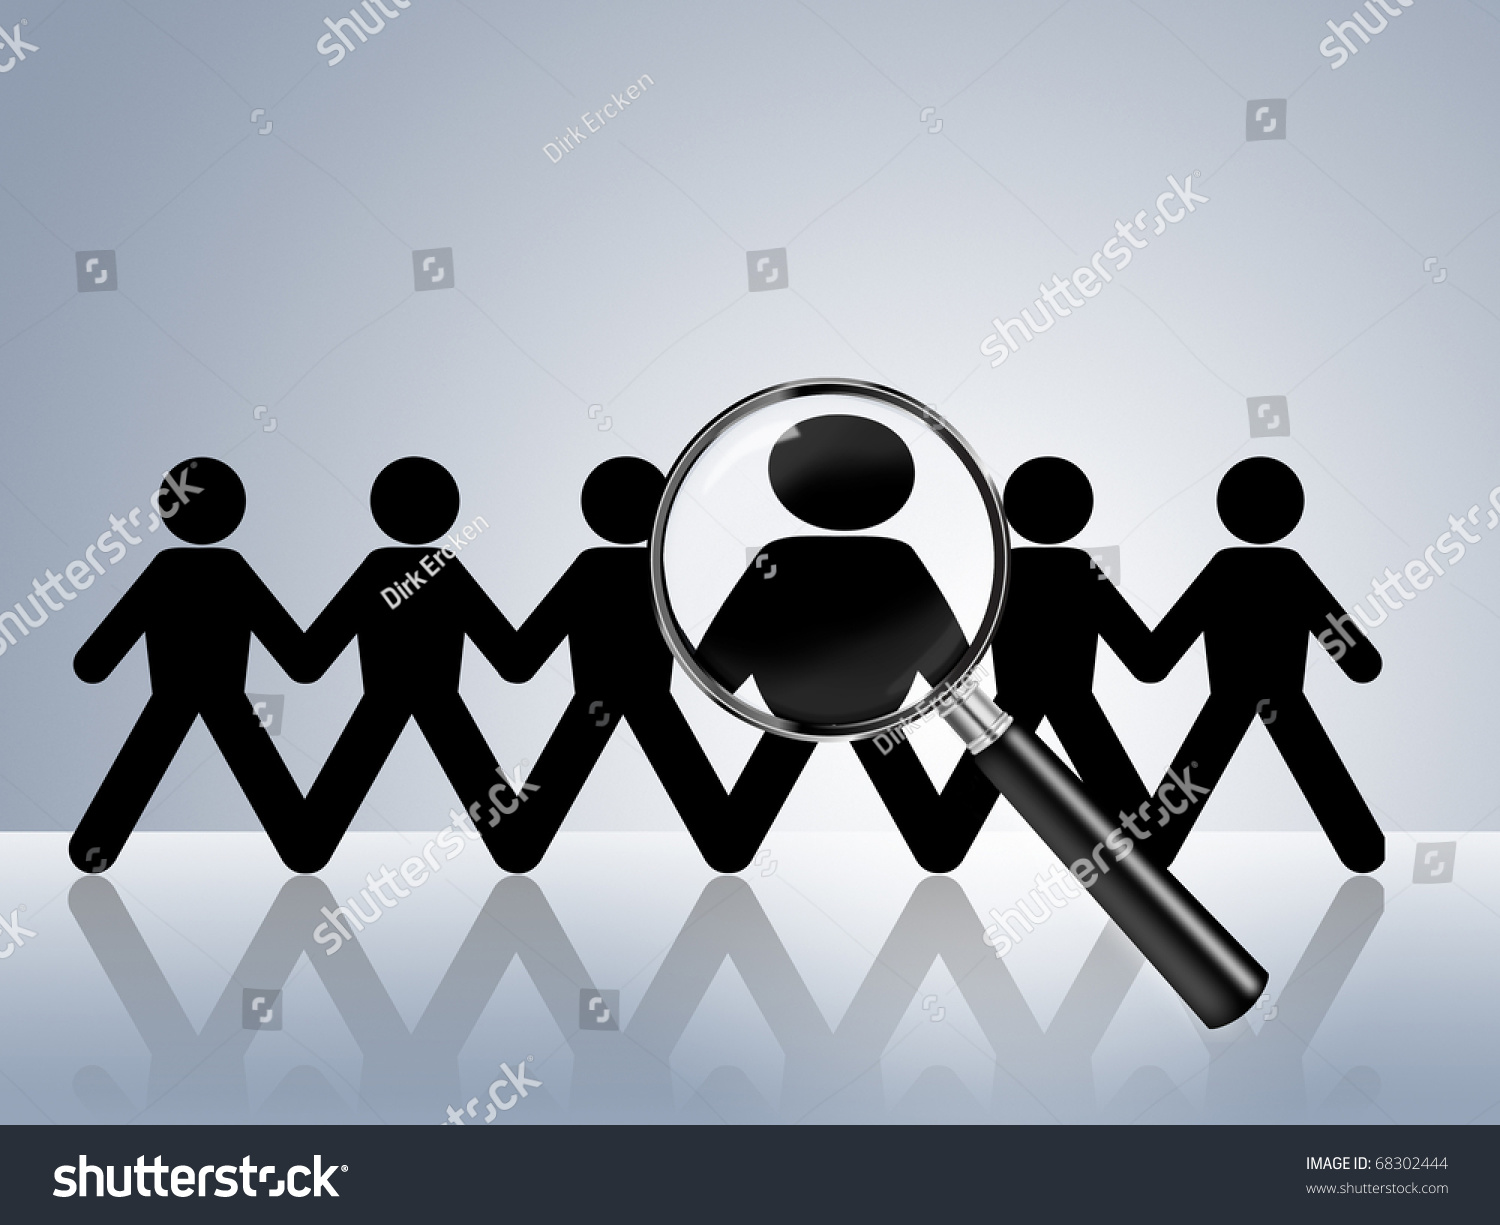 paper chain figures wanted employer job stock illustration paper chain figures wanted employer job vacancy head hunter searching job search help wanted job ad